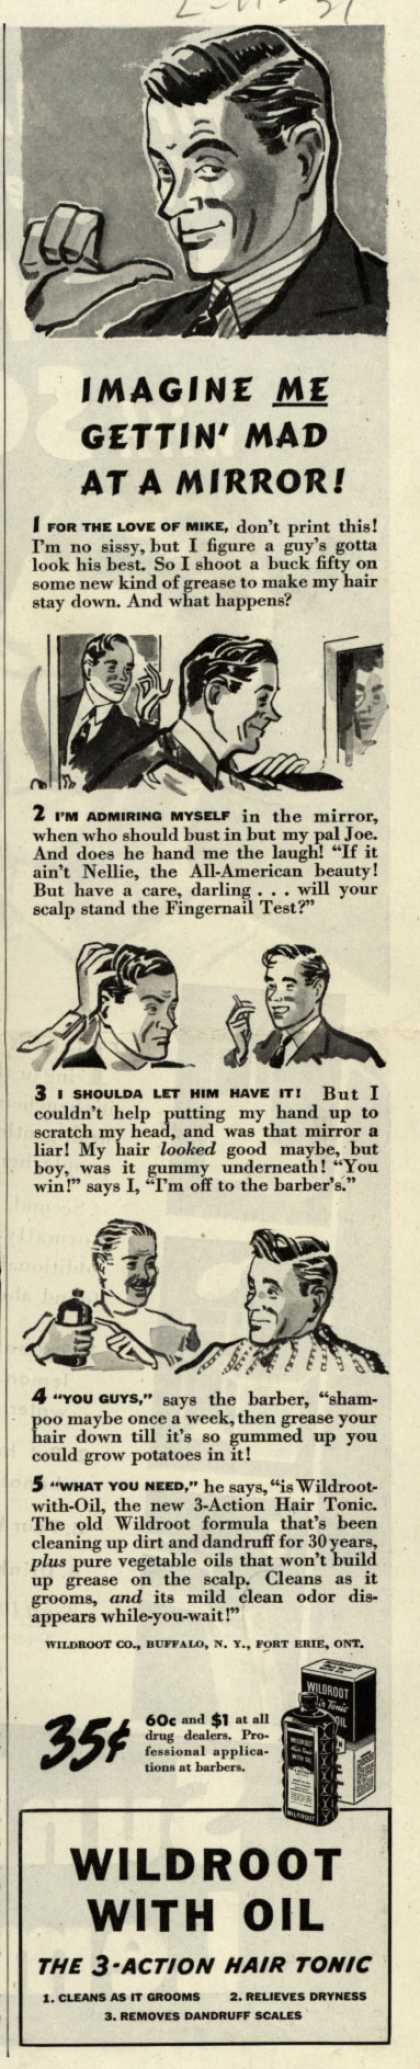 Wildroot Company's Wildroot Hair Tonic – Imagine Me Gettin' Mad At A Mirror (1939)